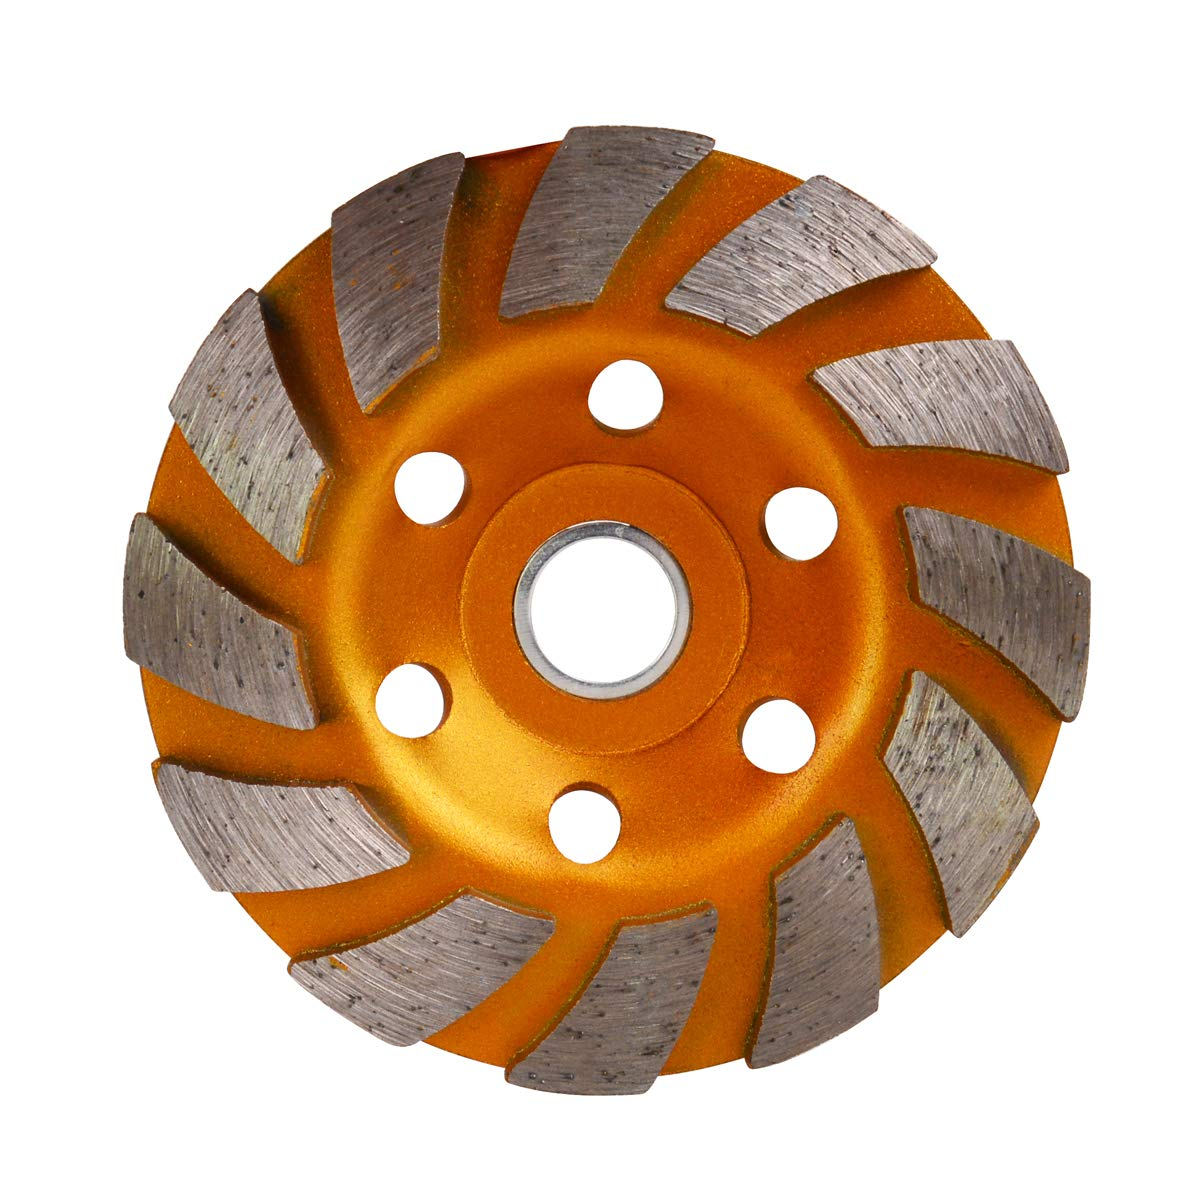 TECKE 4 inch Concrete Turbo Diamond Grinding Cup Wheel for Angle Grinder 12 Segs Heavy Duty